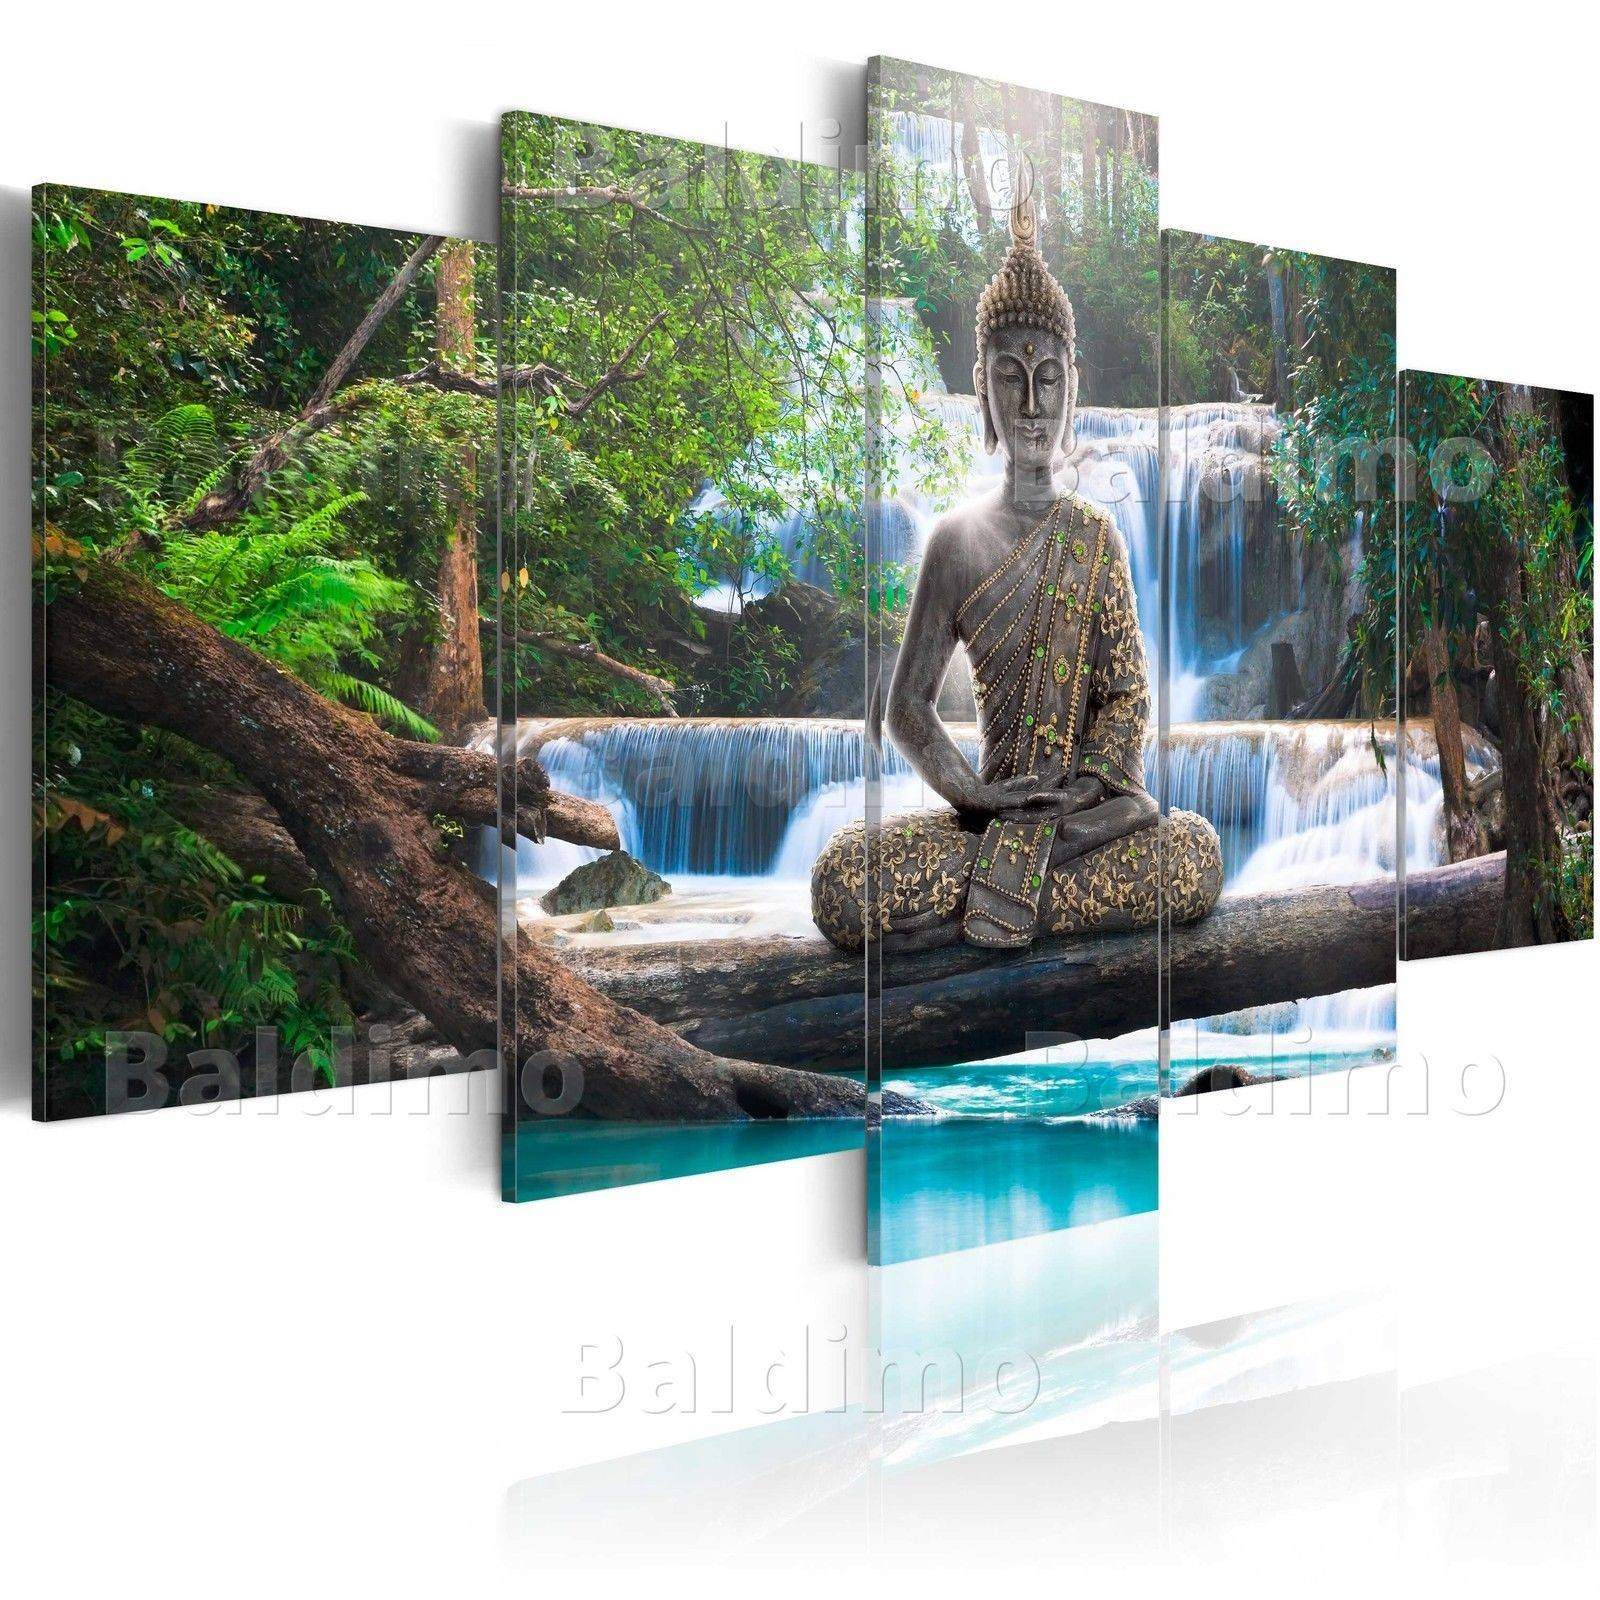 5Panels Large Buddha Waterfall Art Print Picture Canvas Wall Art With Regard To Most Current Large Buddha Wall Art (Gallery 2 of 15)